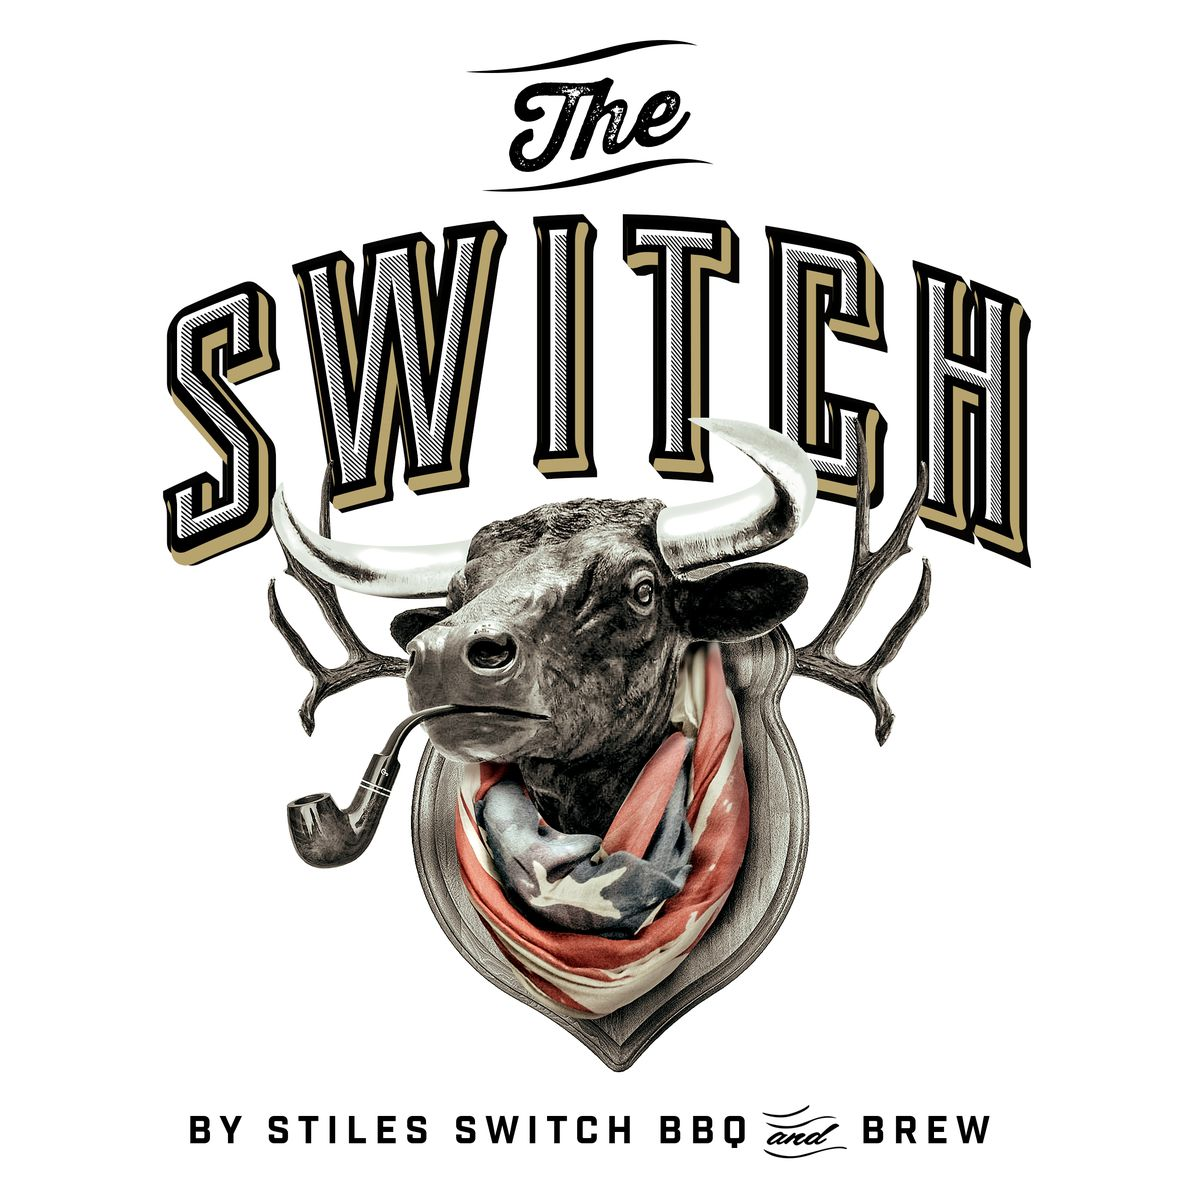 The Switch's logo